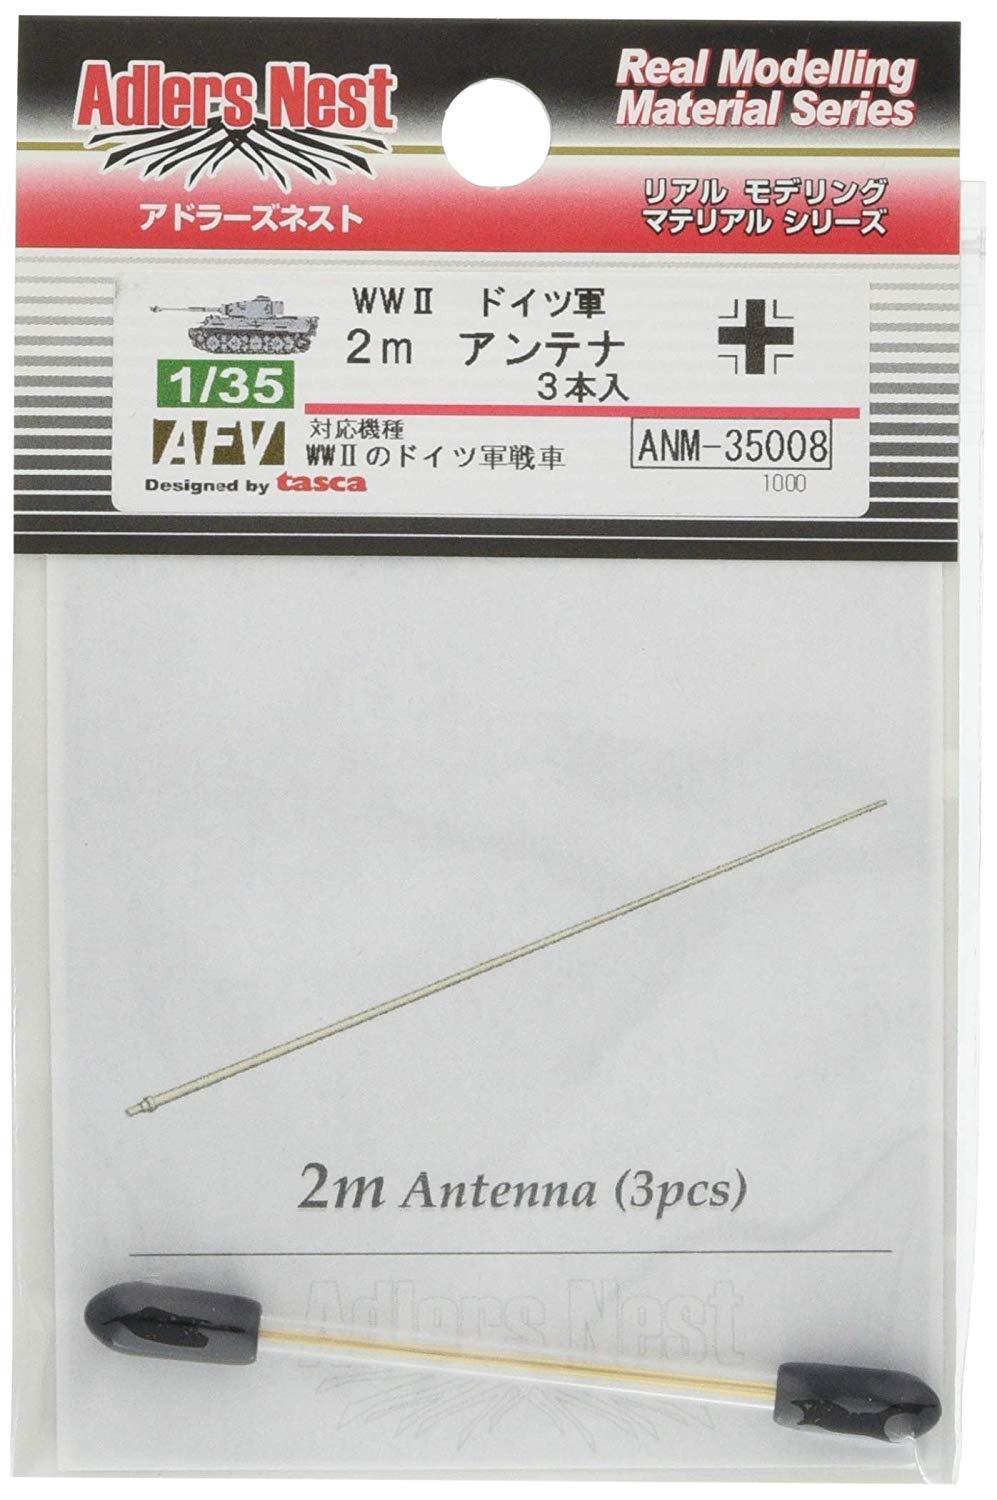 Adlers Nest 1/35 German 2m Antenna (3 pcs)